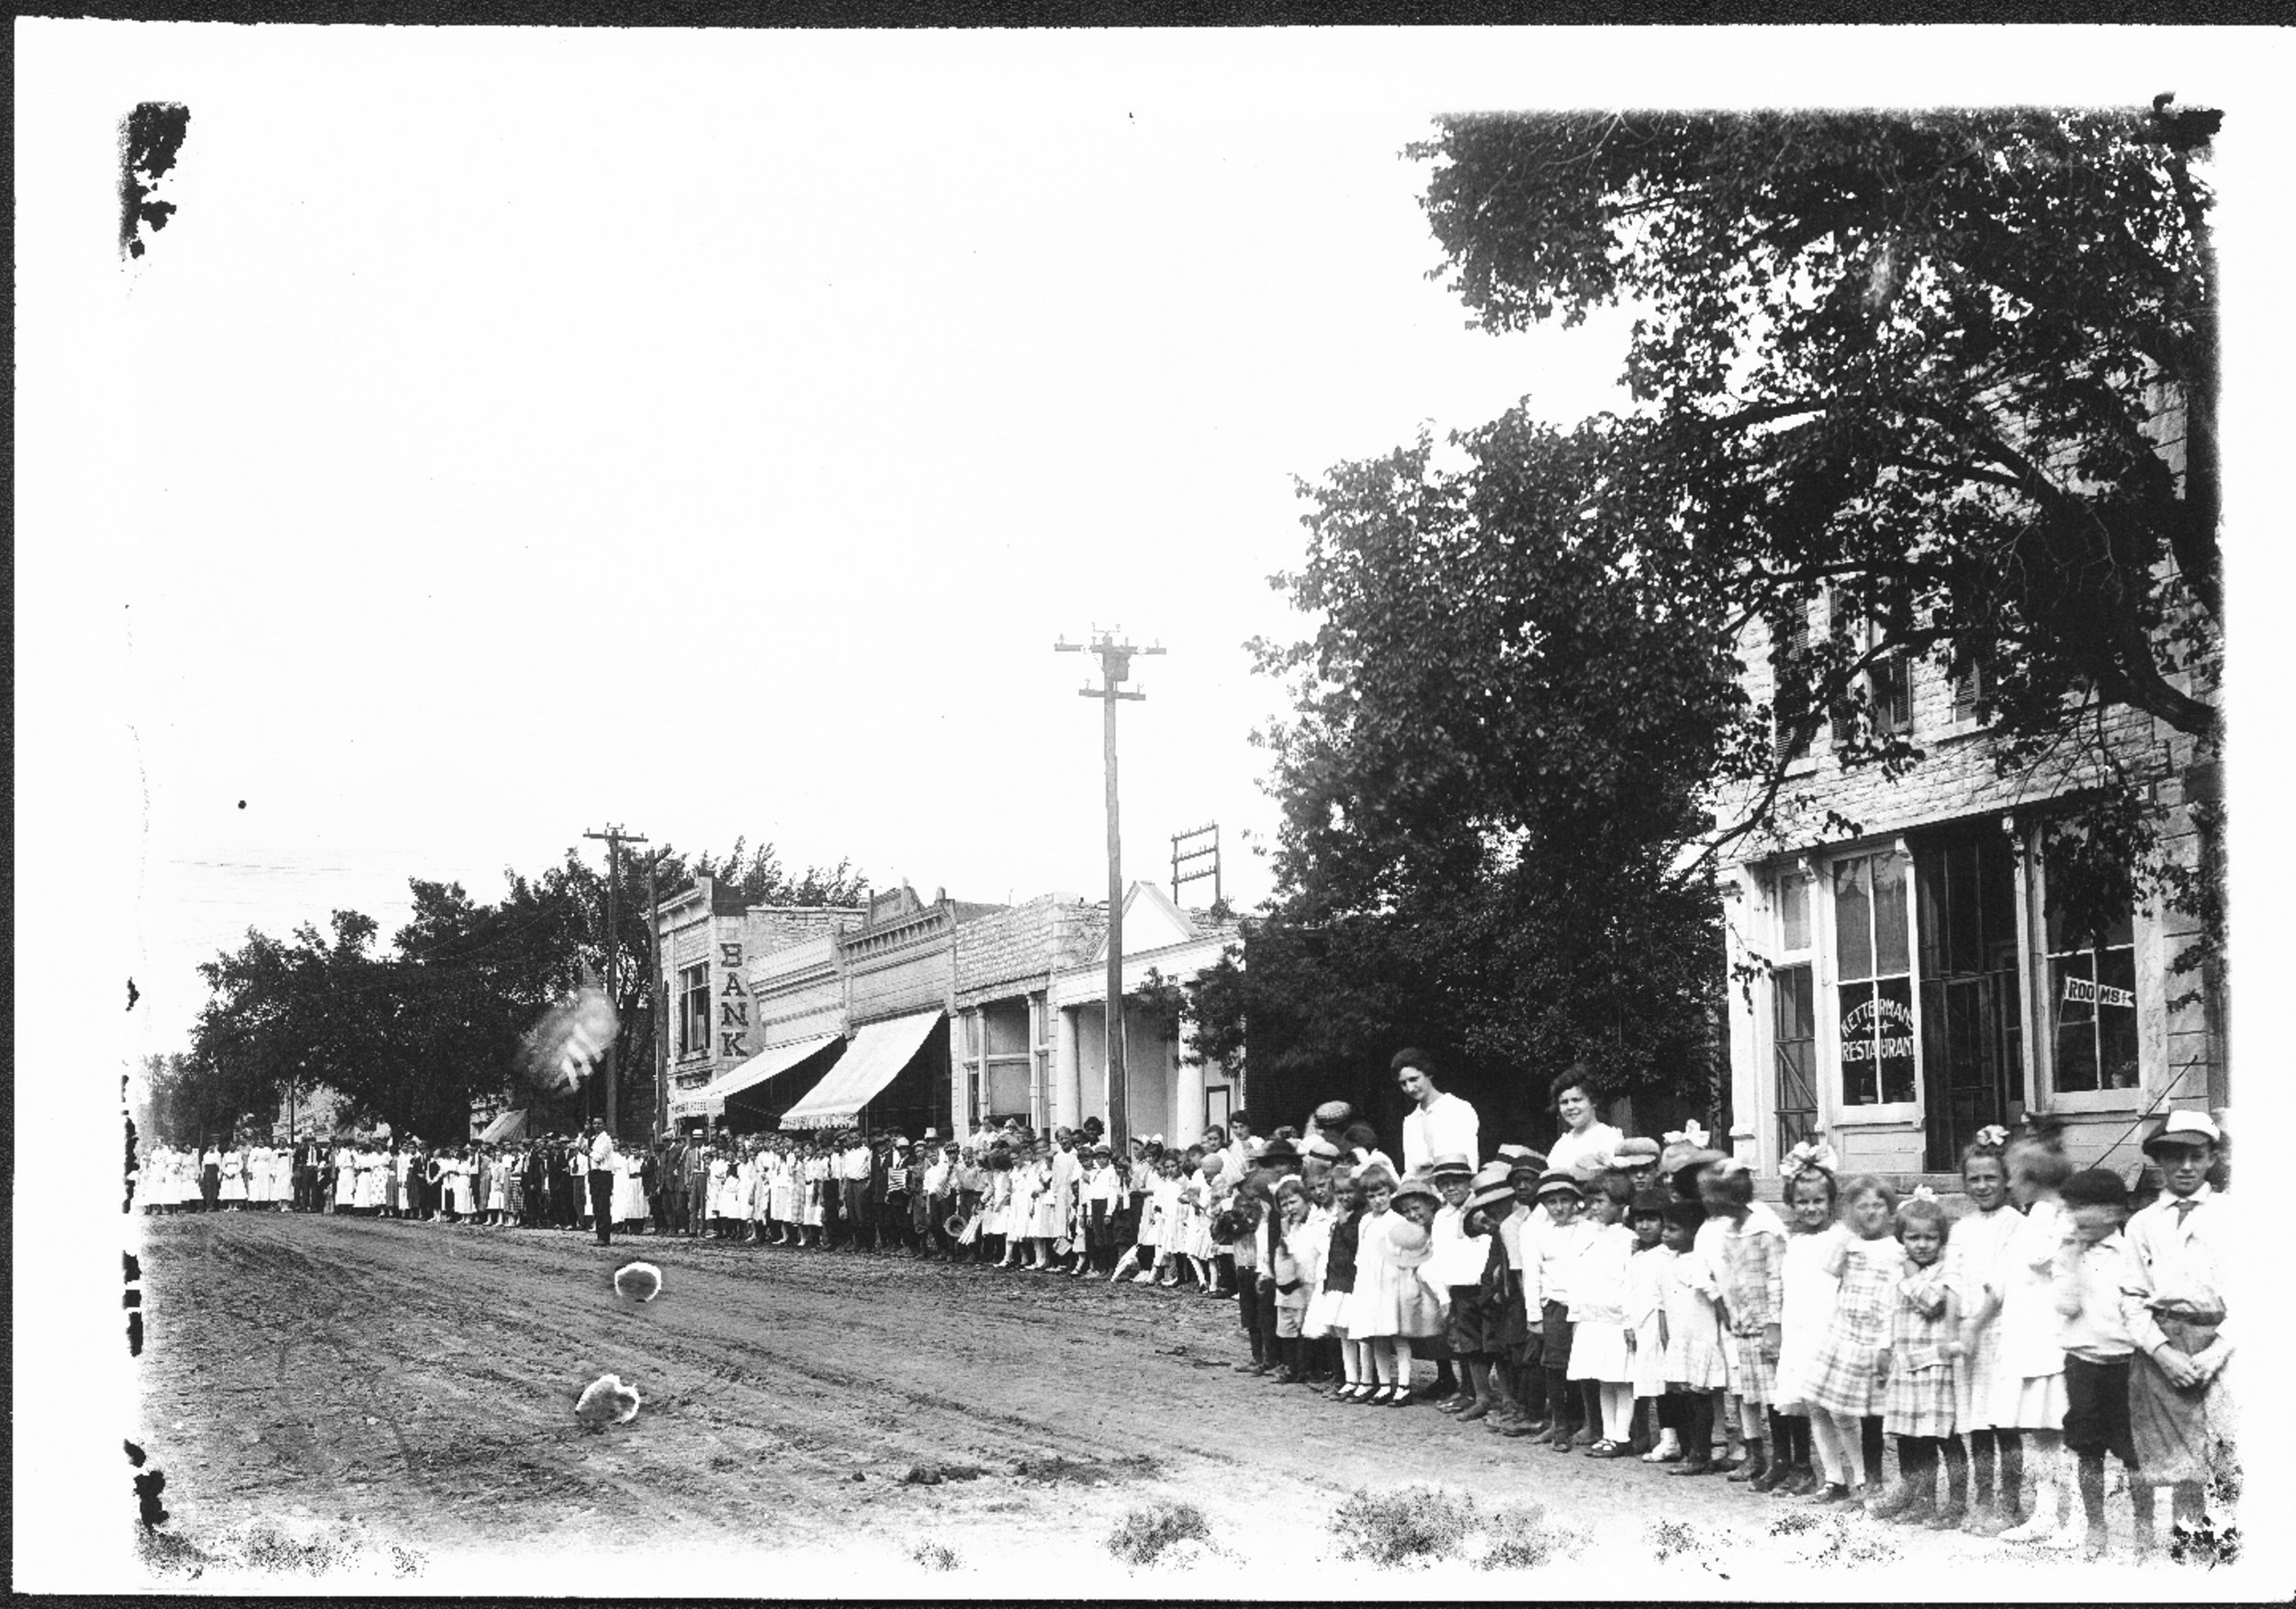 Adults and children gathered for a parade, Alma, Kansas